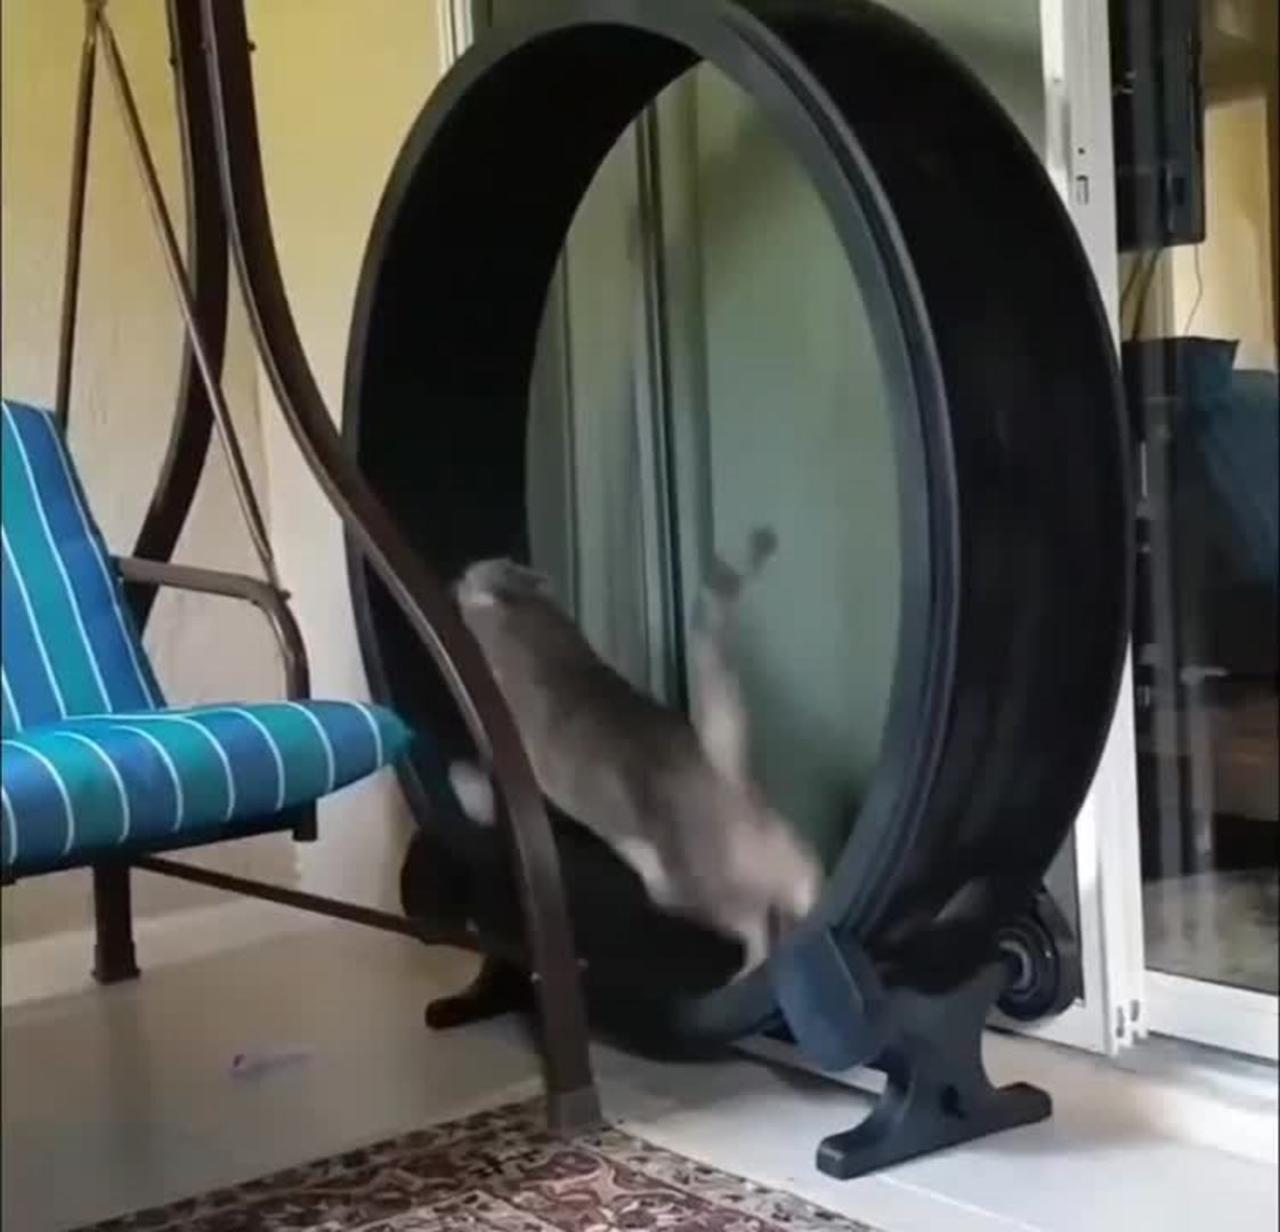 Cat Runs On Wheel At Fast Pace To Lose Weight